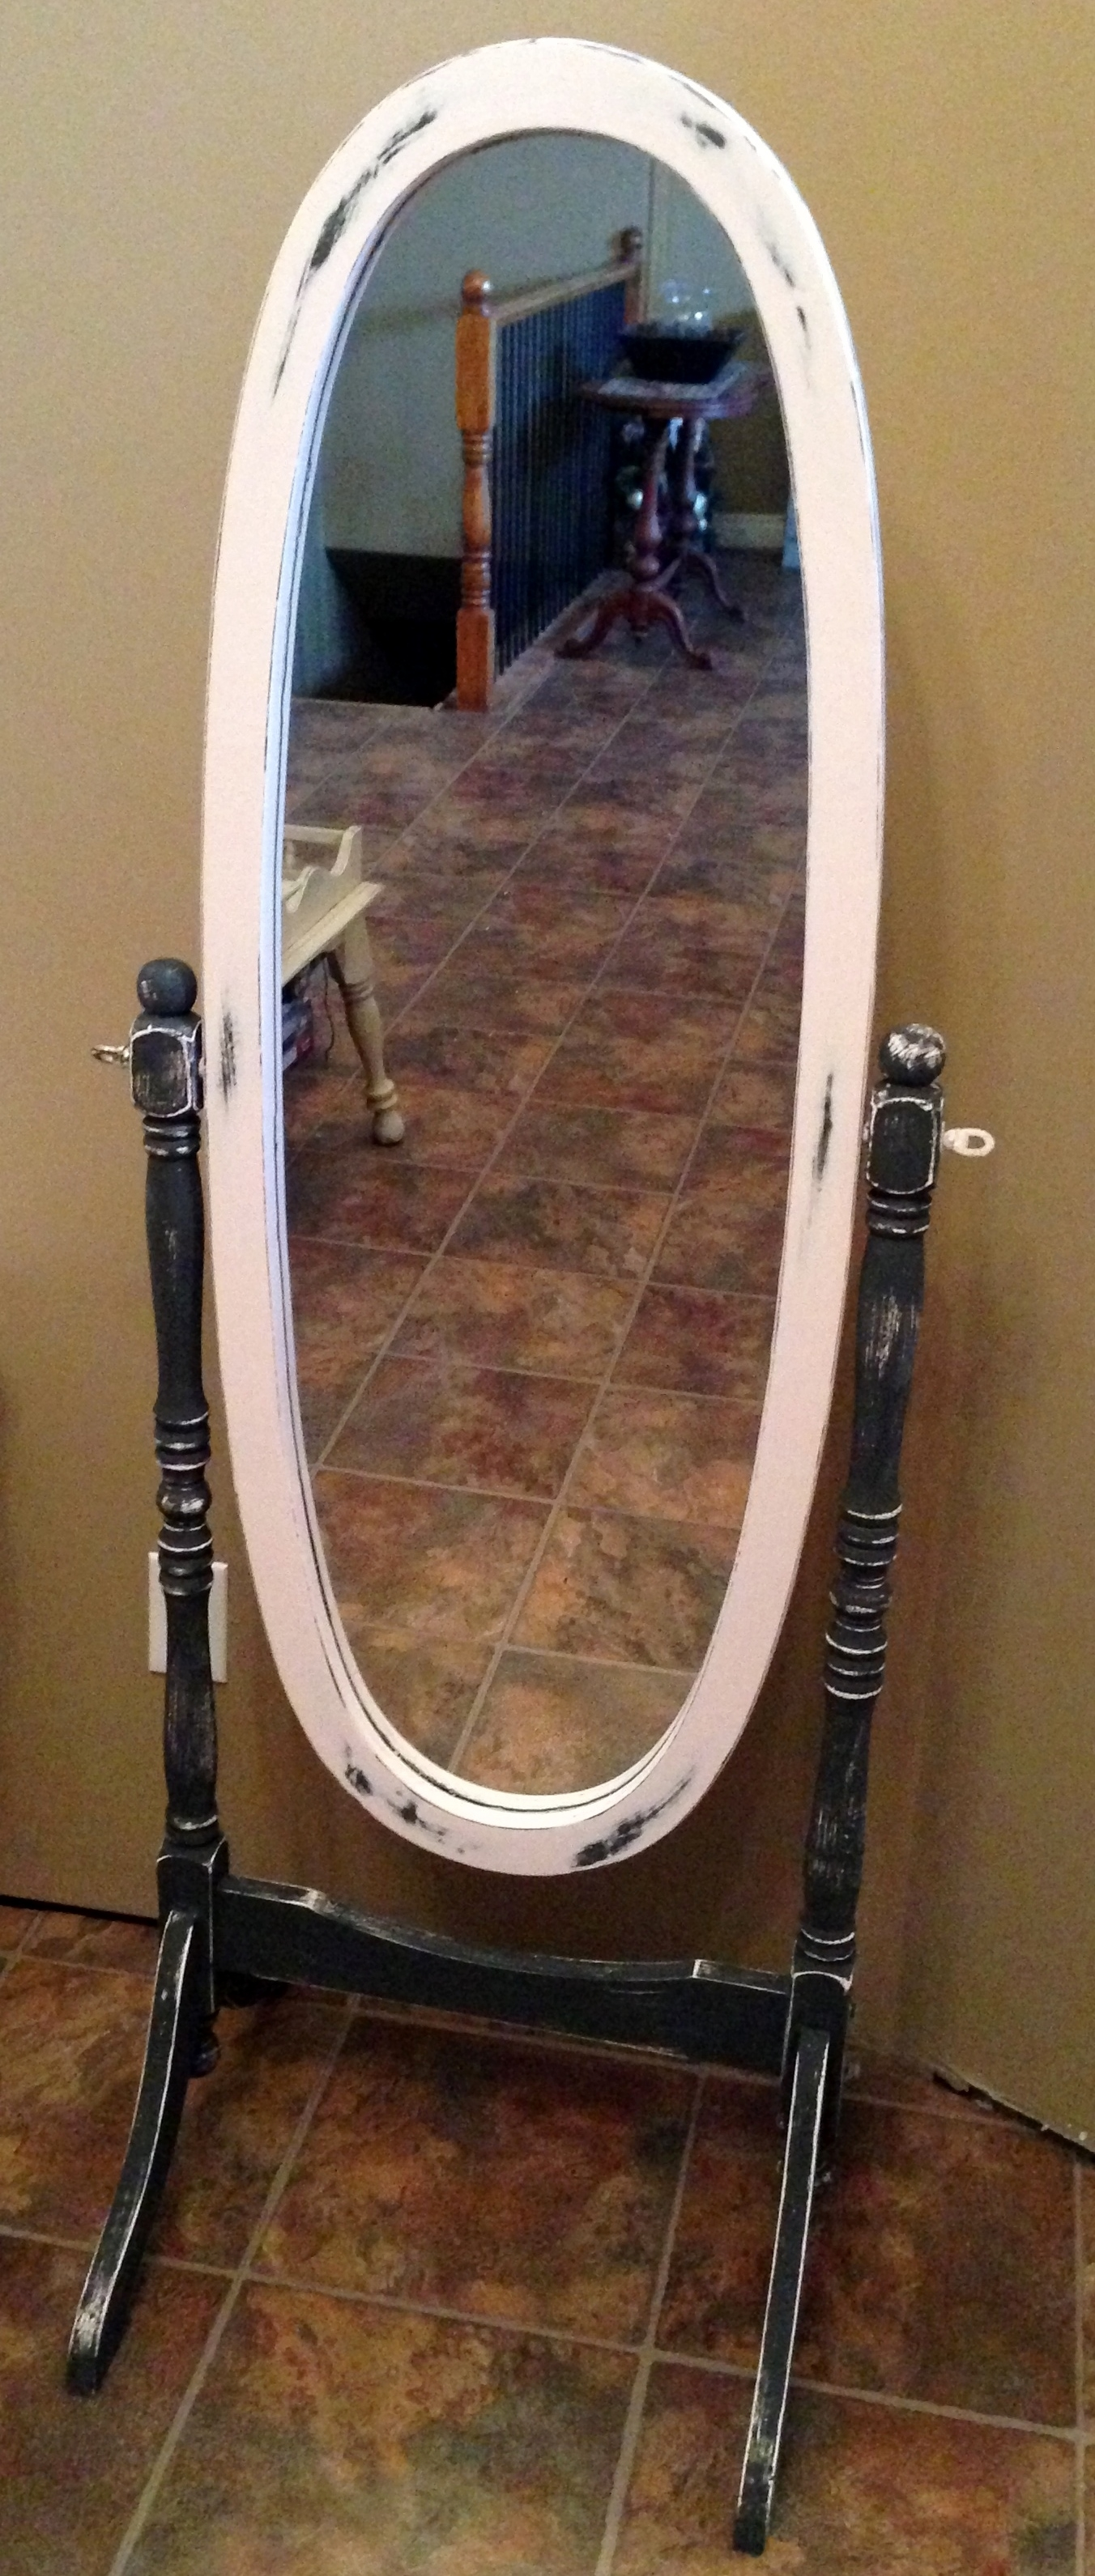 Oval Standing Mirror Want To Find An Antique One Master Bedroom Throughout Free Standing Oval Mirror (Image 13 of 15)